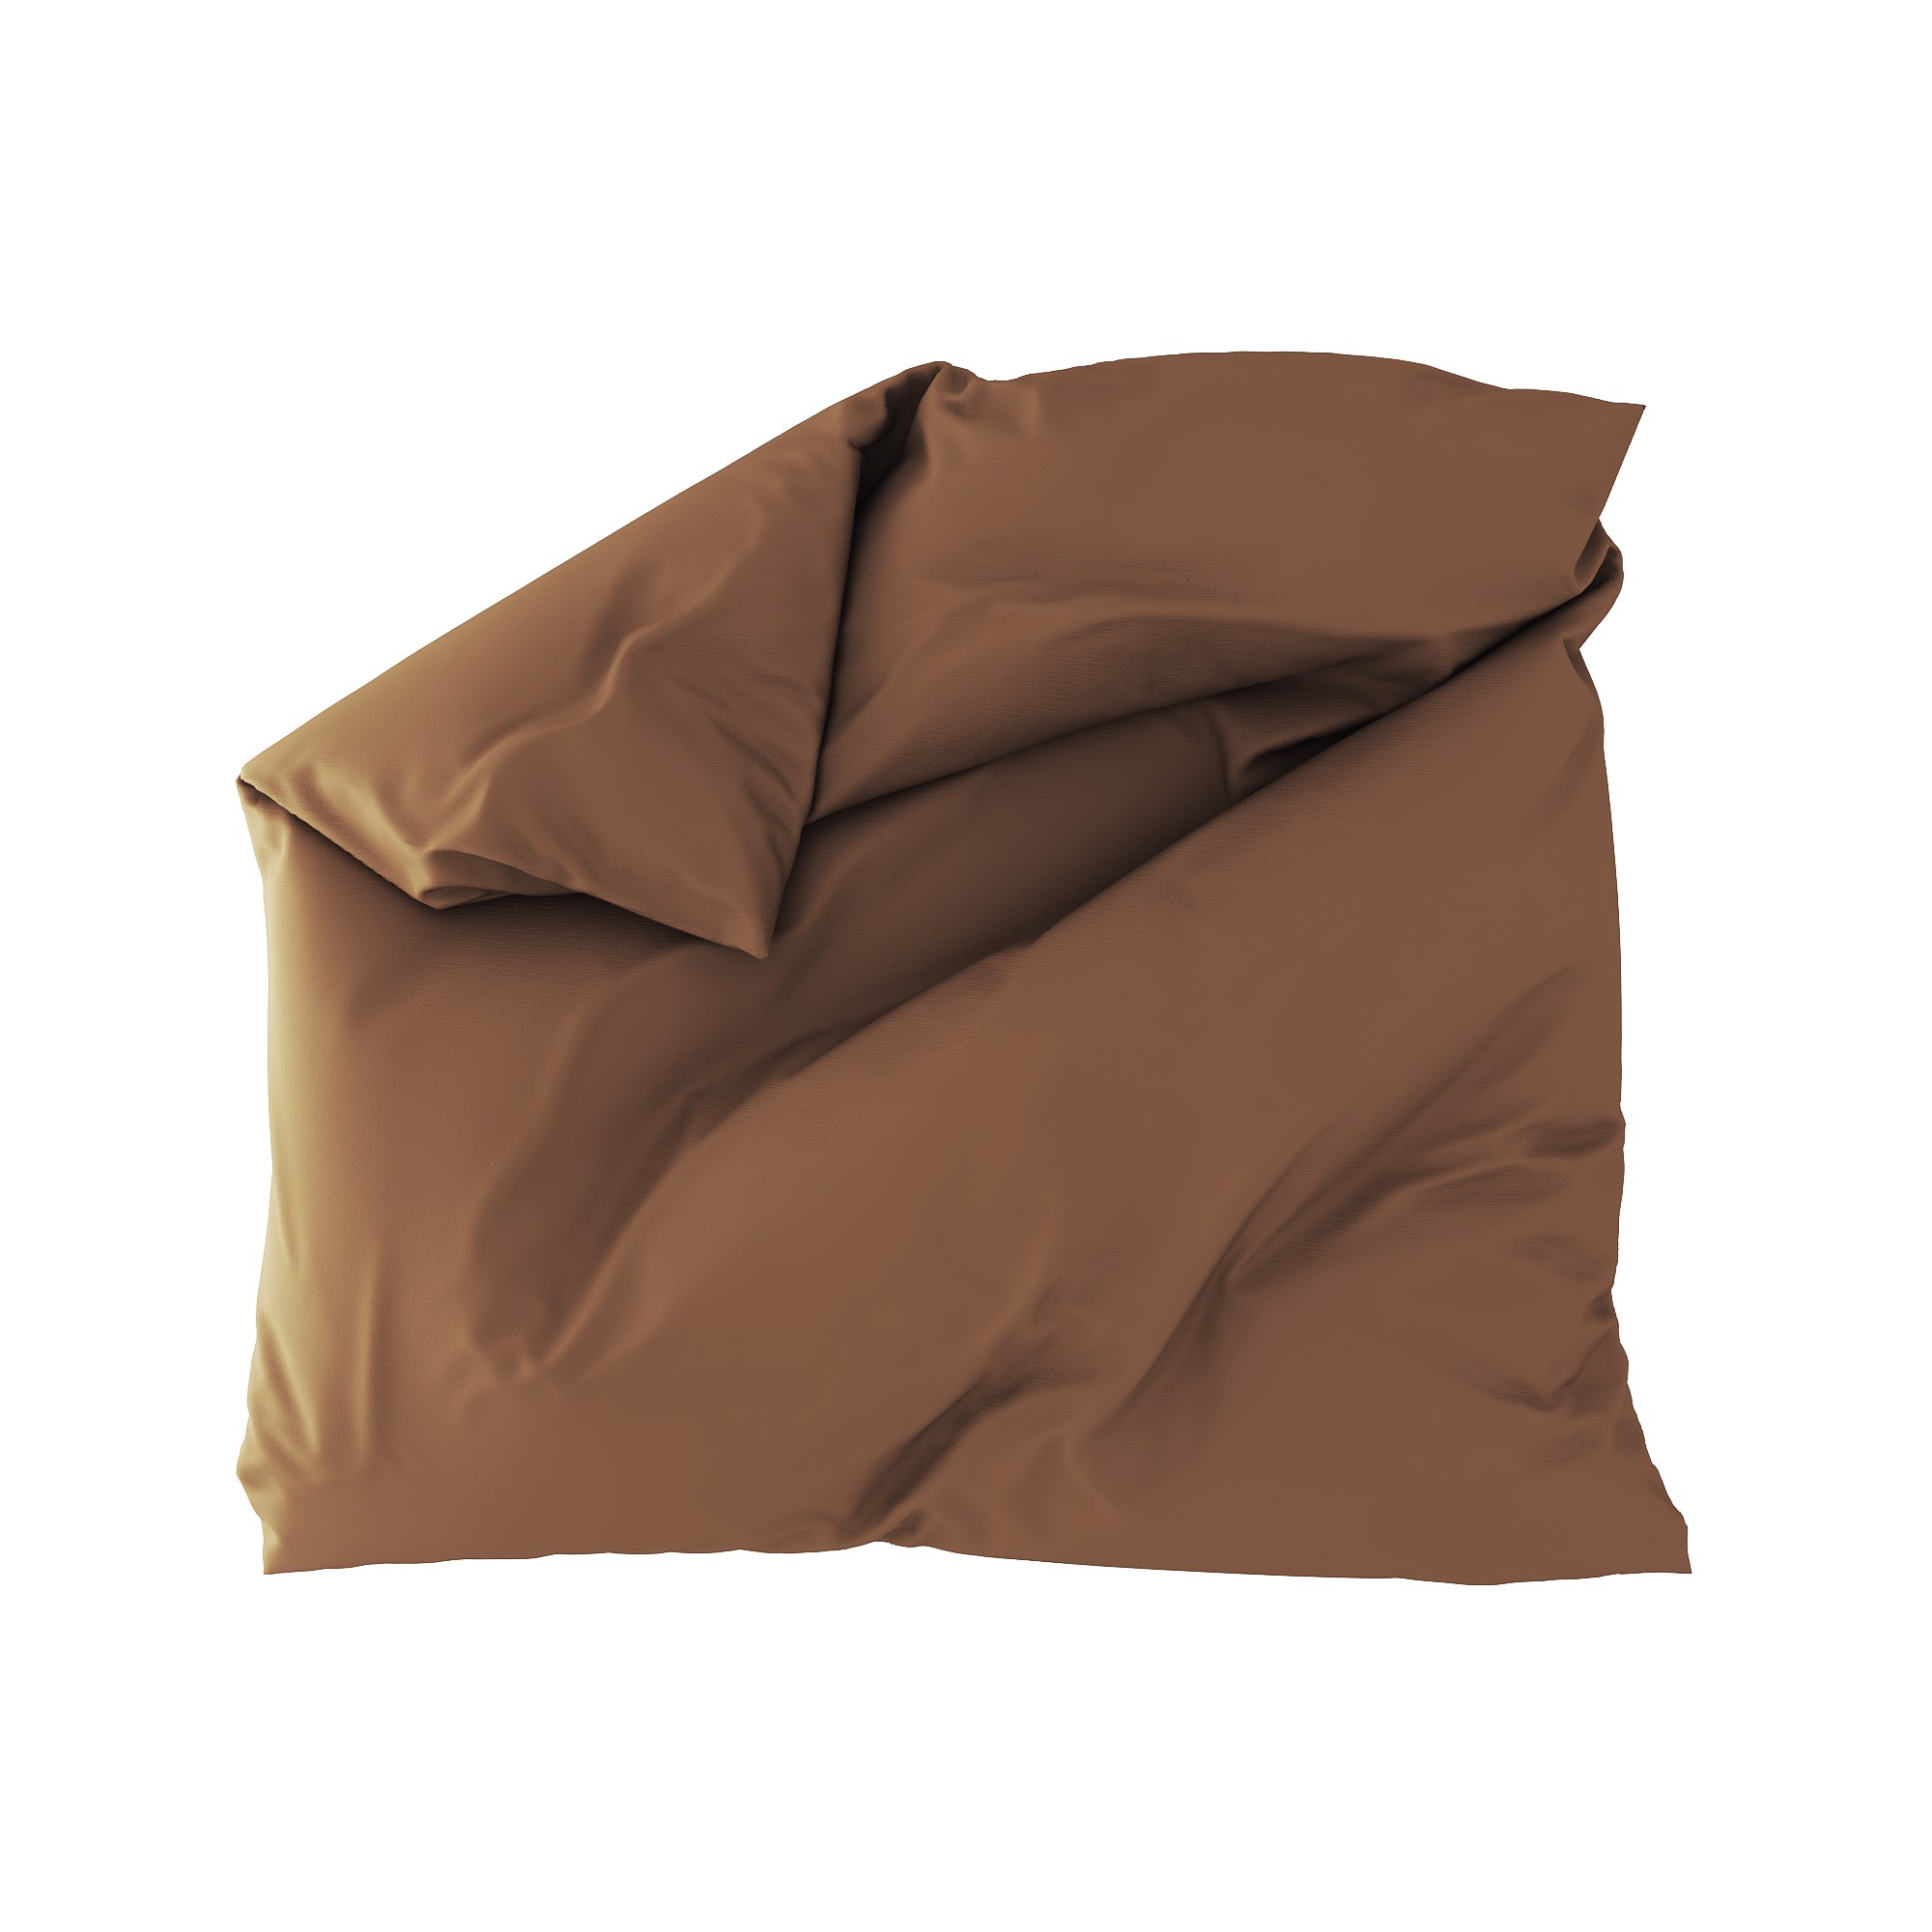 Standard duvet cover 21 Dark brown